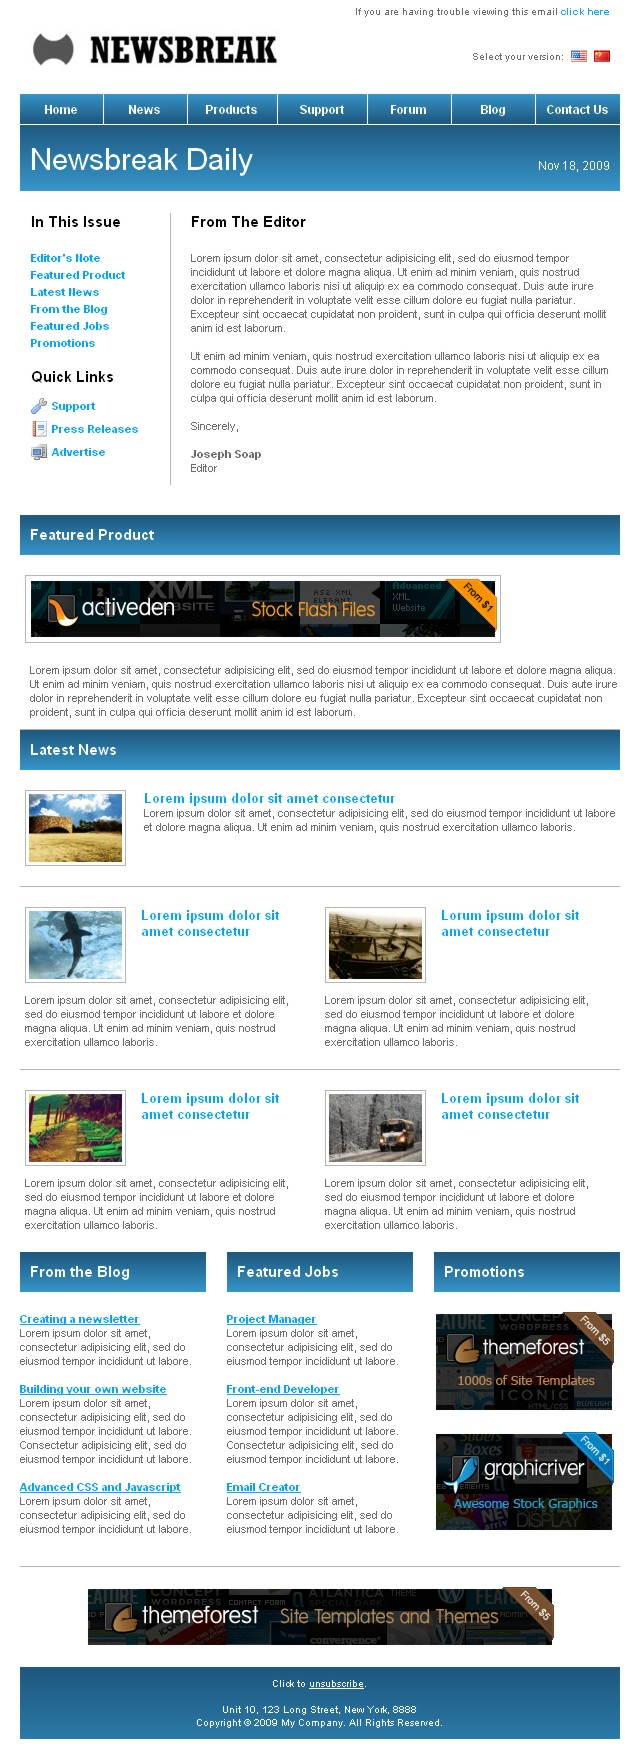 Newsbreak - Corporate Email Template